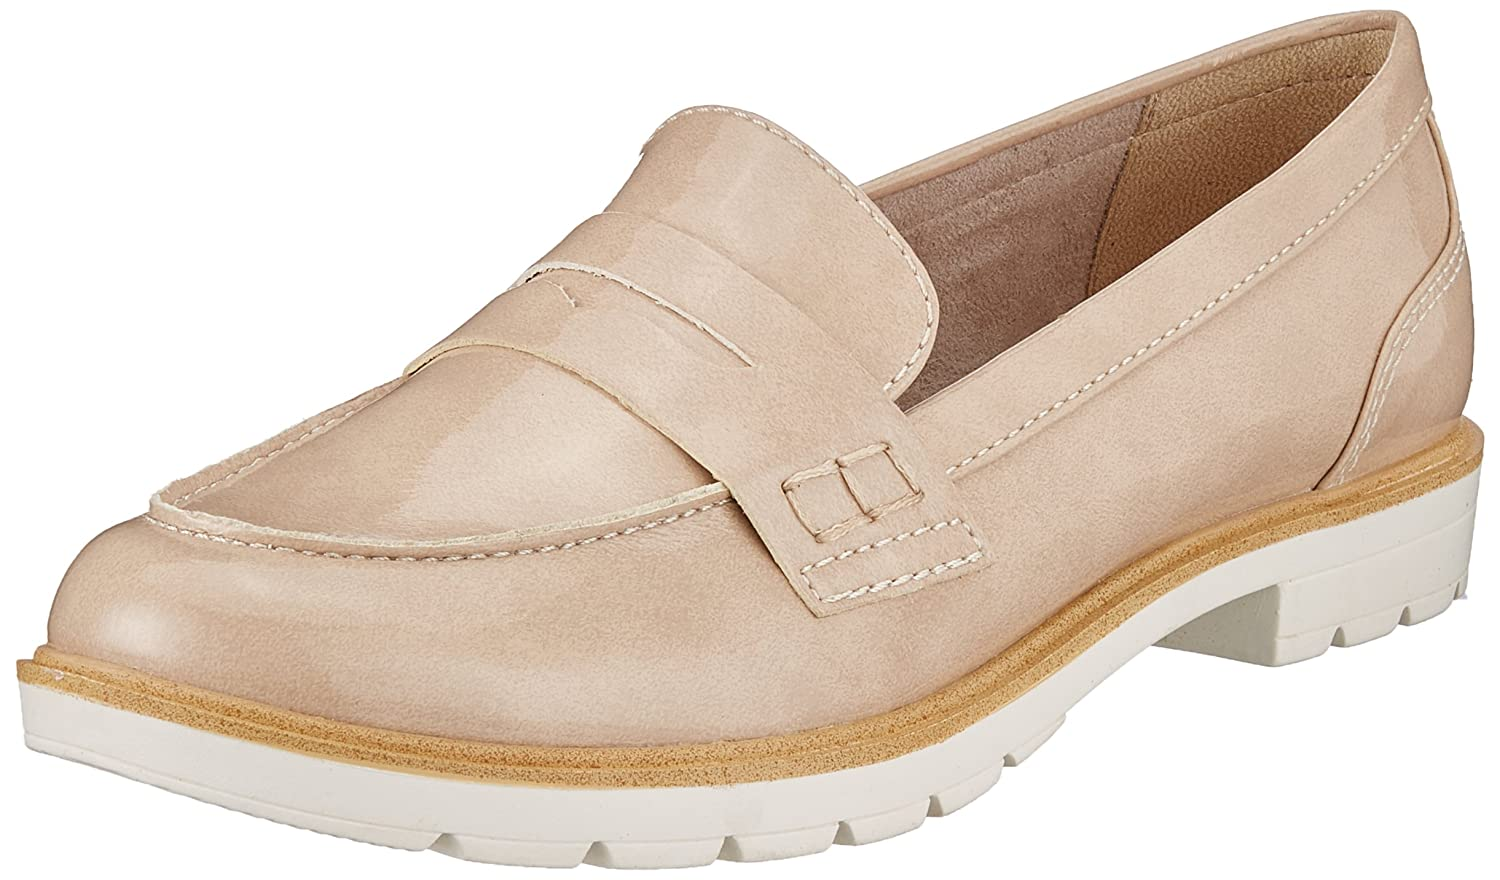 Tamaris 24660, Chaussures B07HH1Y1H2 Bateau Femme Beige Chaussures 19921 (Cream Patent) 294f419 - shopssong.space